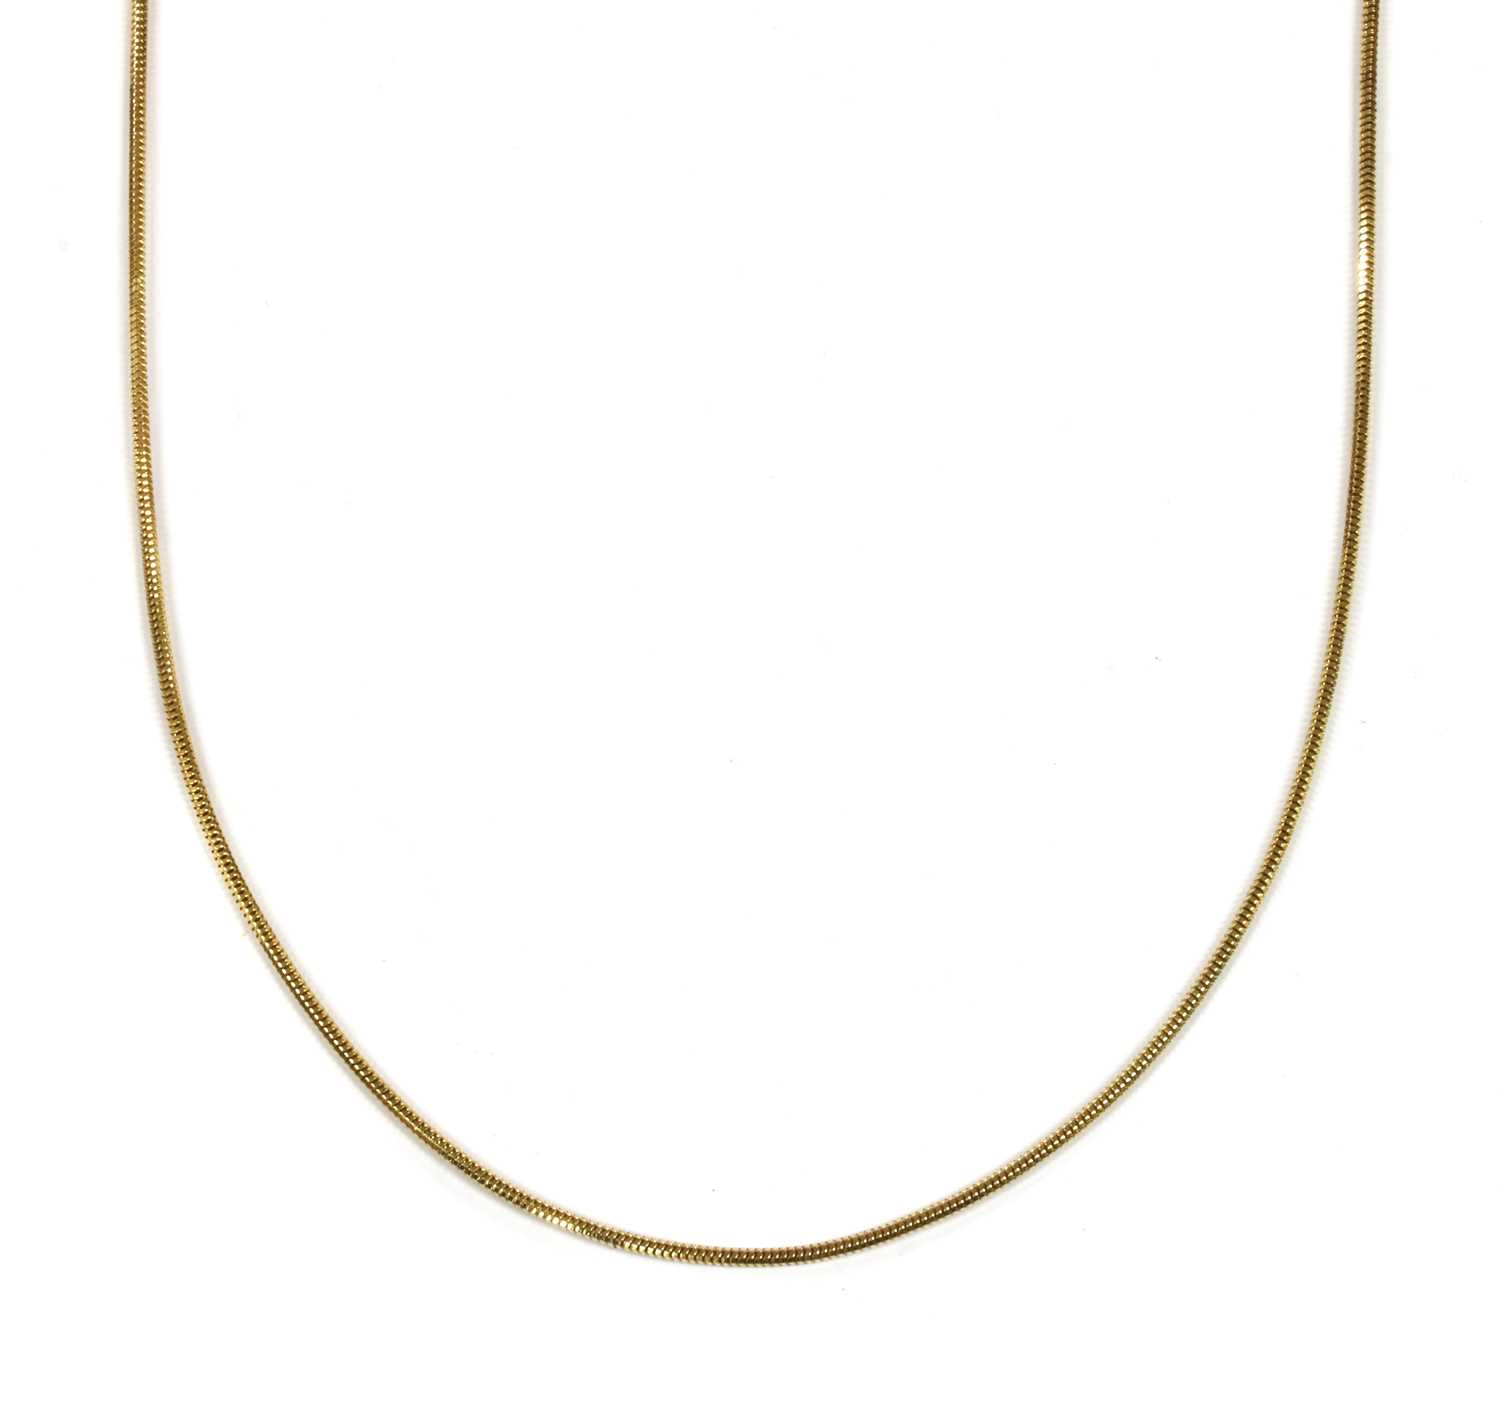 Lot 41 - An 18ct gold snake chain